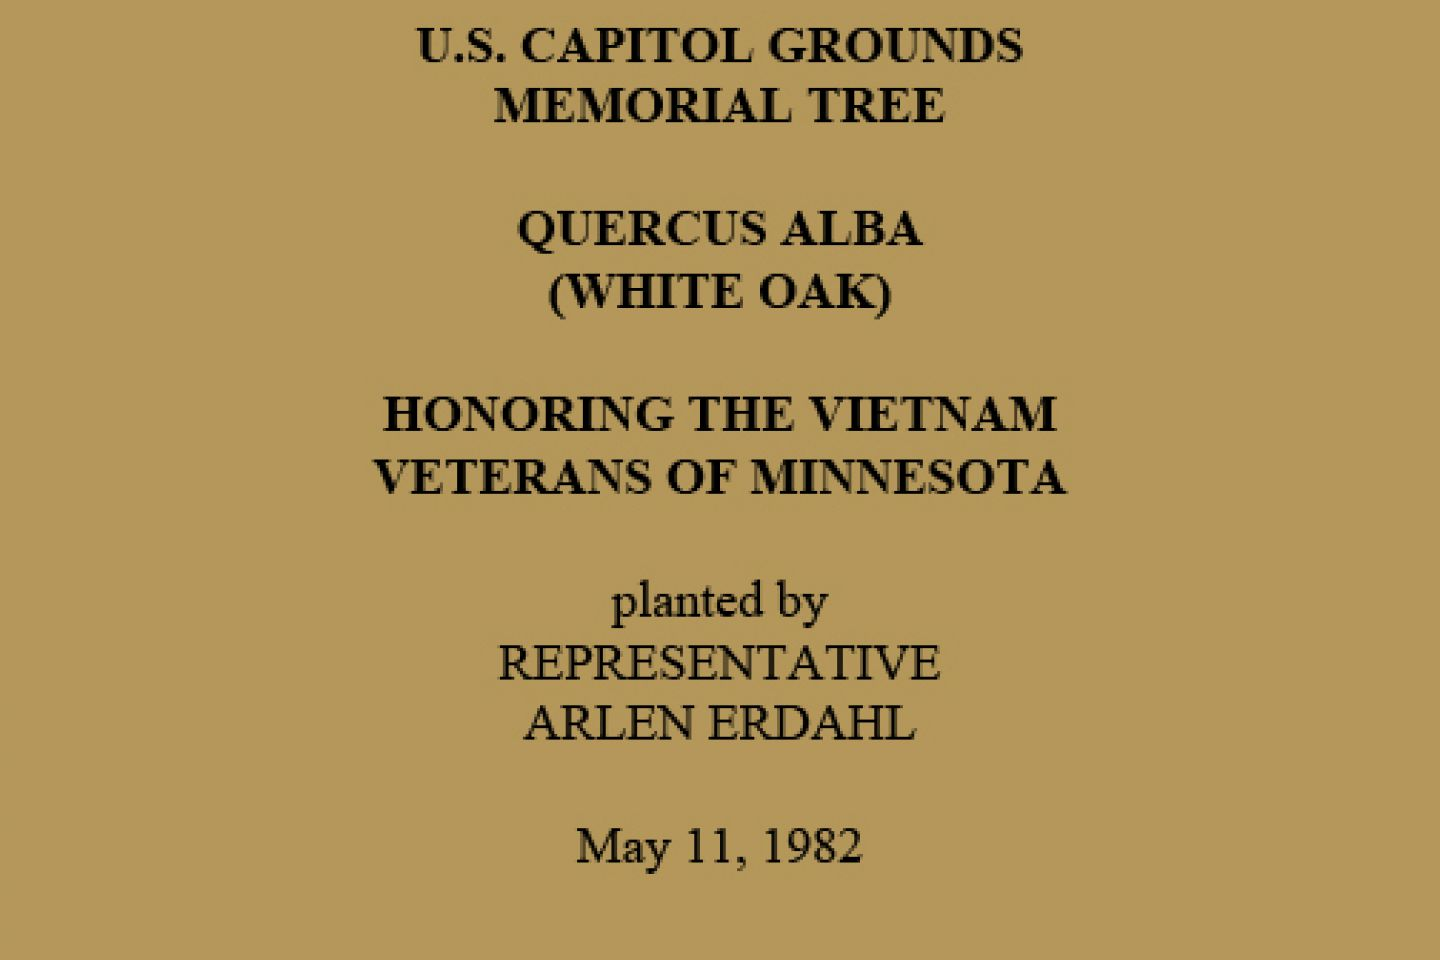 U.S. Capitol Grounds Memorial Tree  Quercus alba (White Oak)  Honoring the Vietnam Veterans of Minnesota  planted by Representative Arlen Erdahl  May 11, 1982